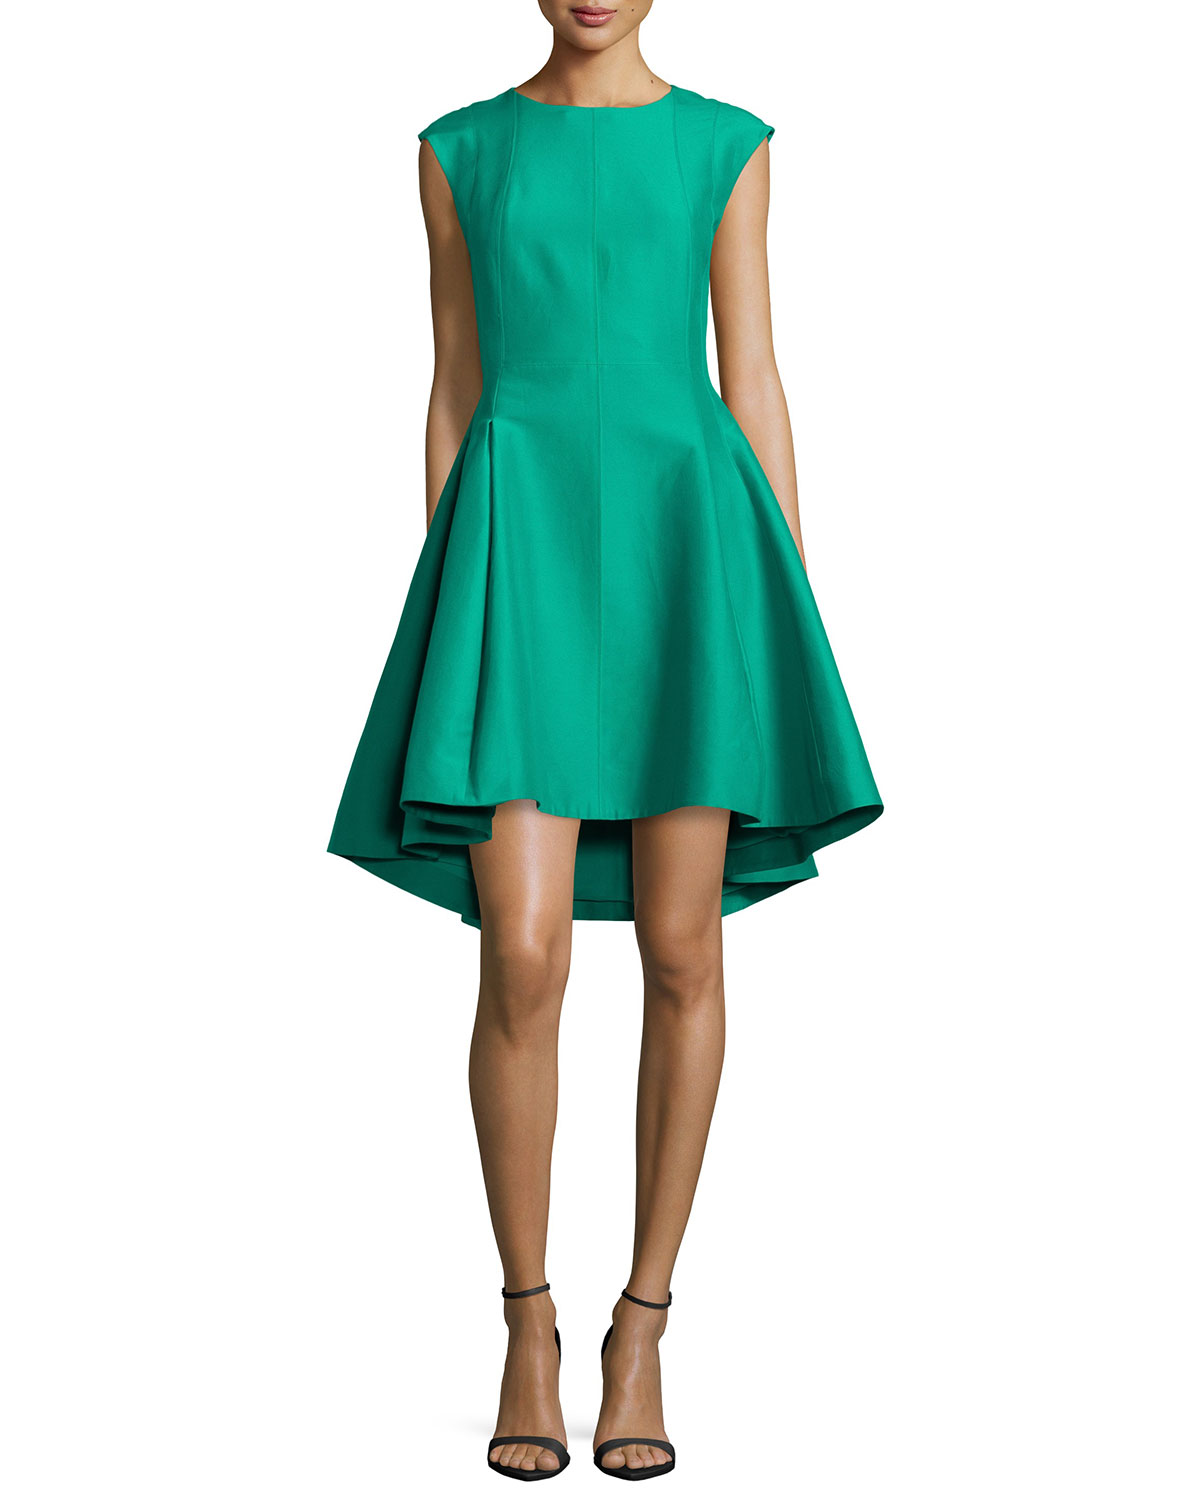 Halston Heritage Cap-Sleeve Faille Ruffled High-Low Dress, Size: 12, Green